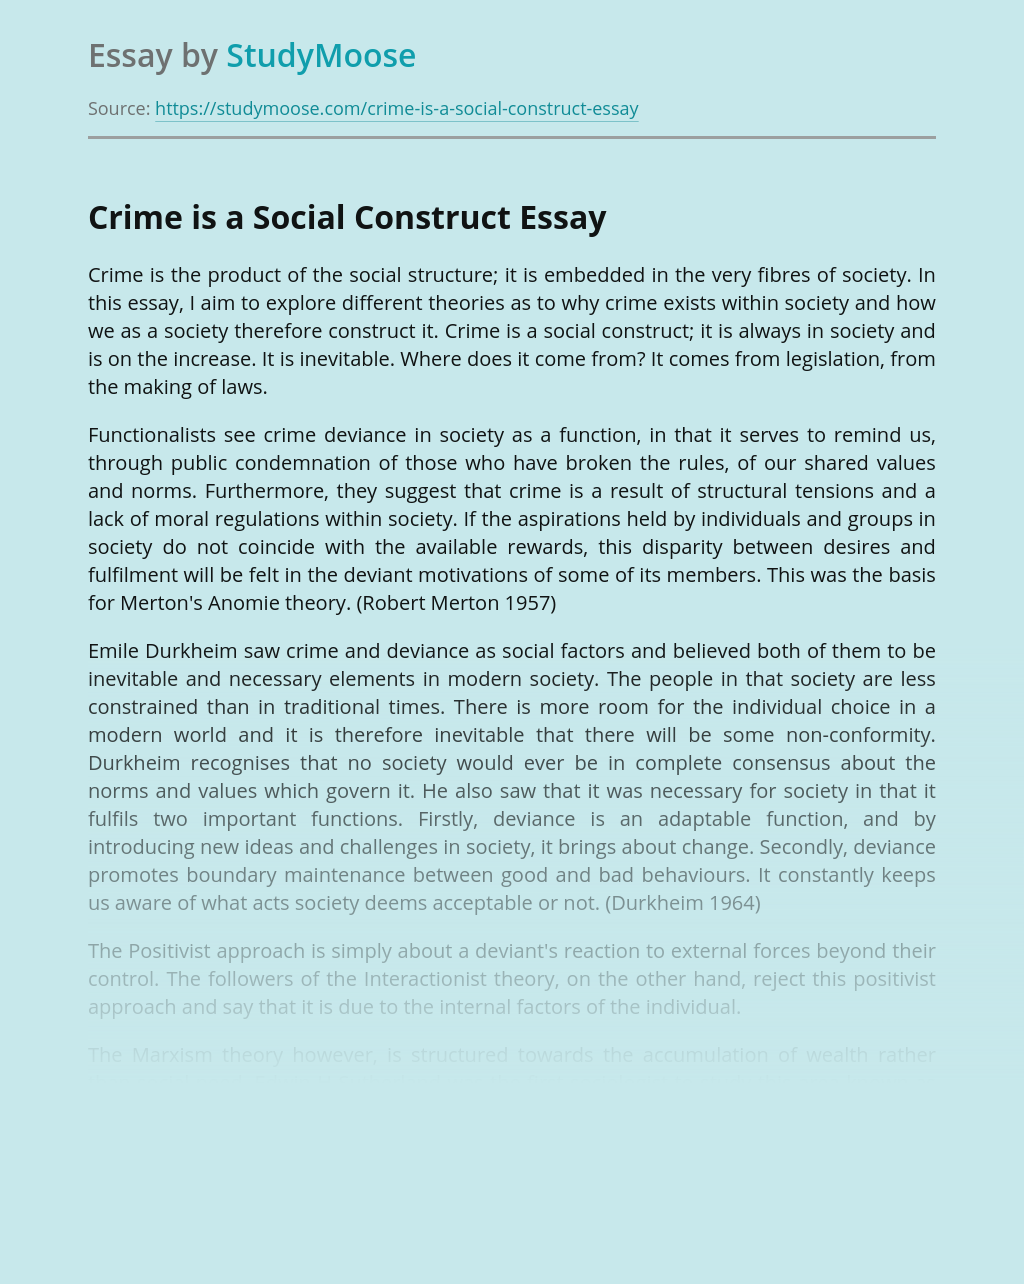 Crime is a Social Construct